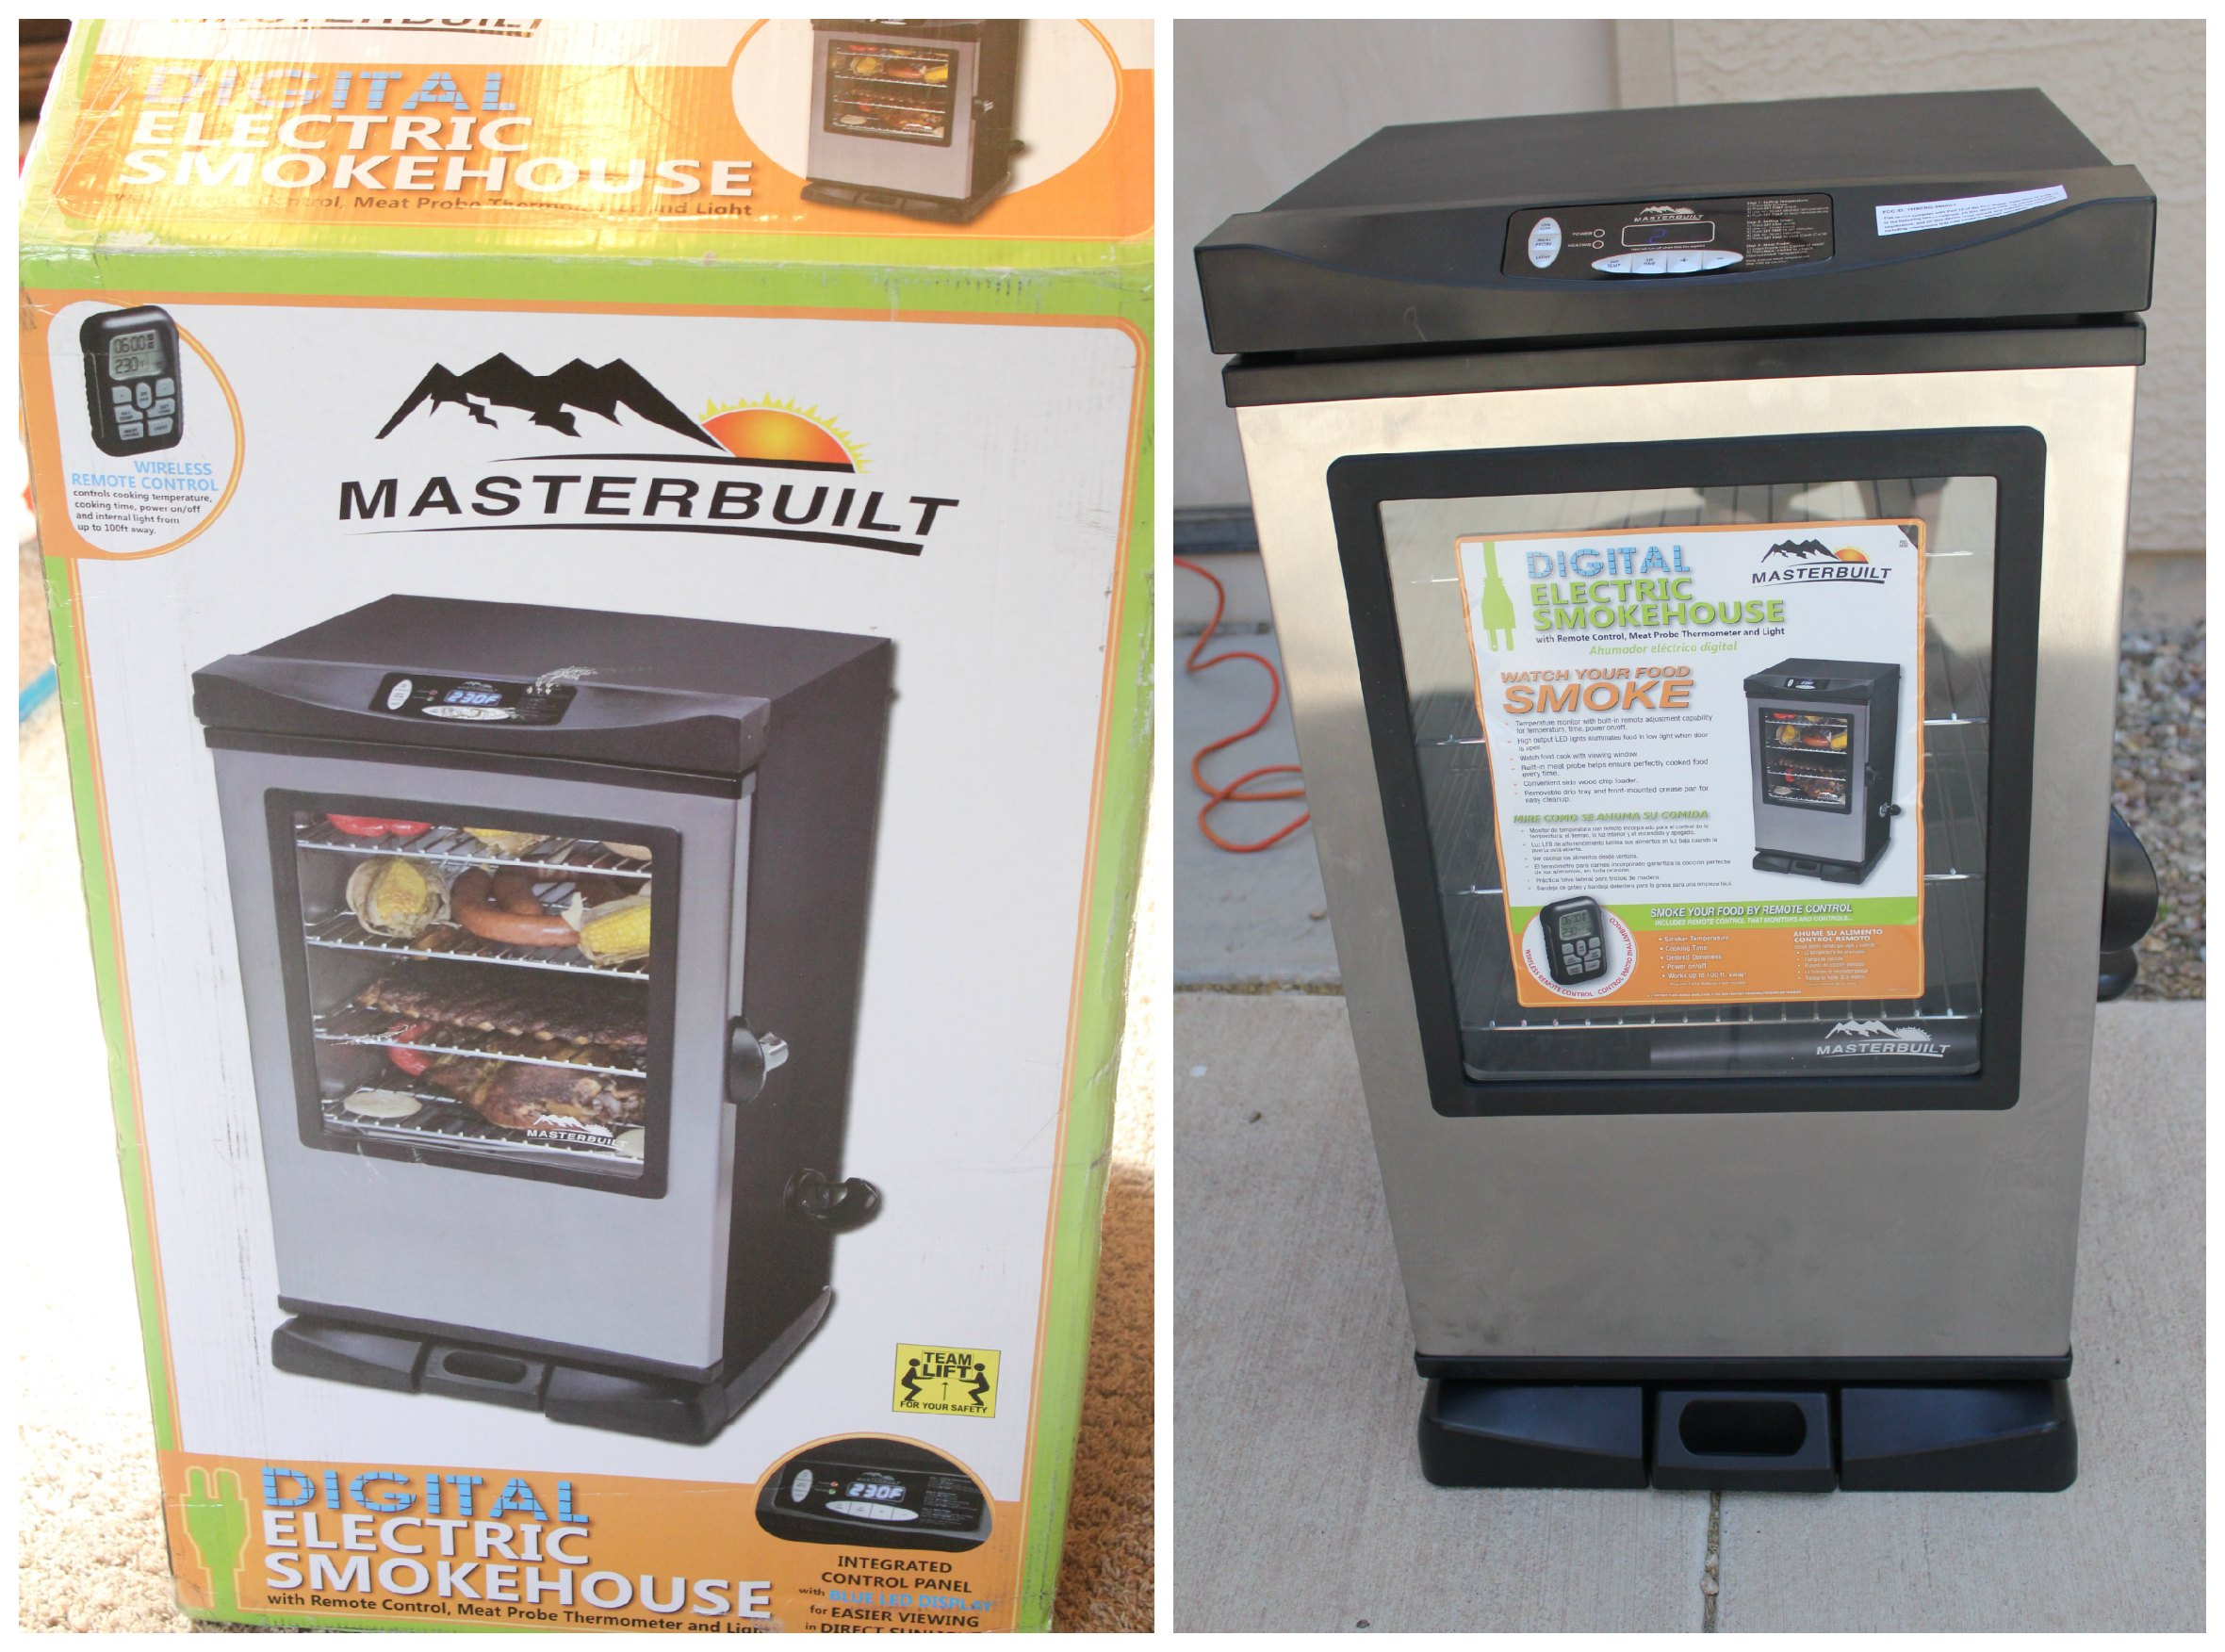 Delicious Summer Cooking with a Masterbuilt Electric Smoker! #A66425